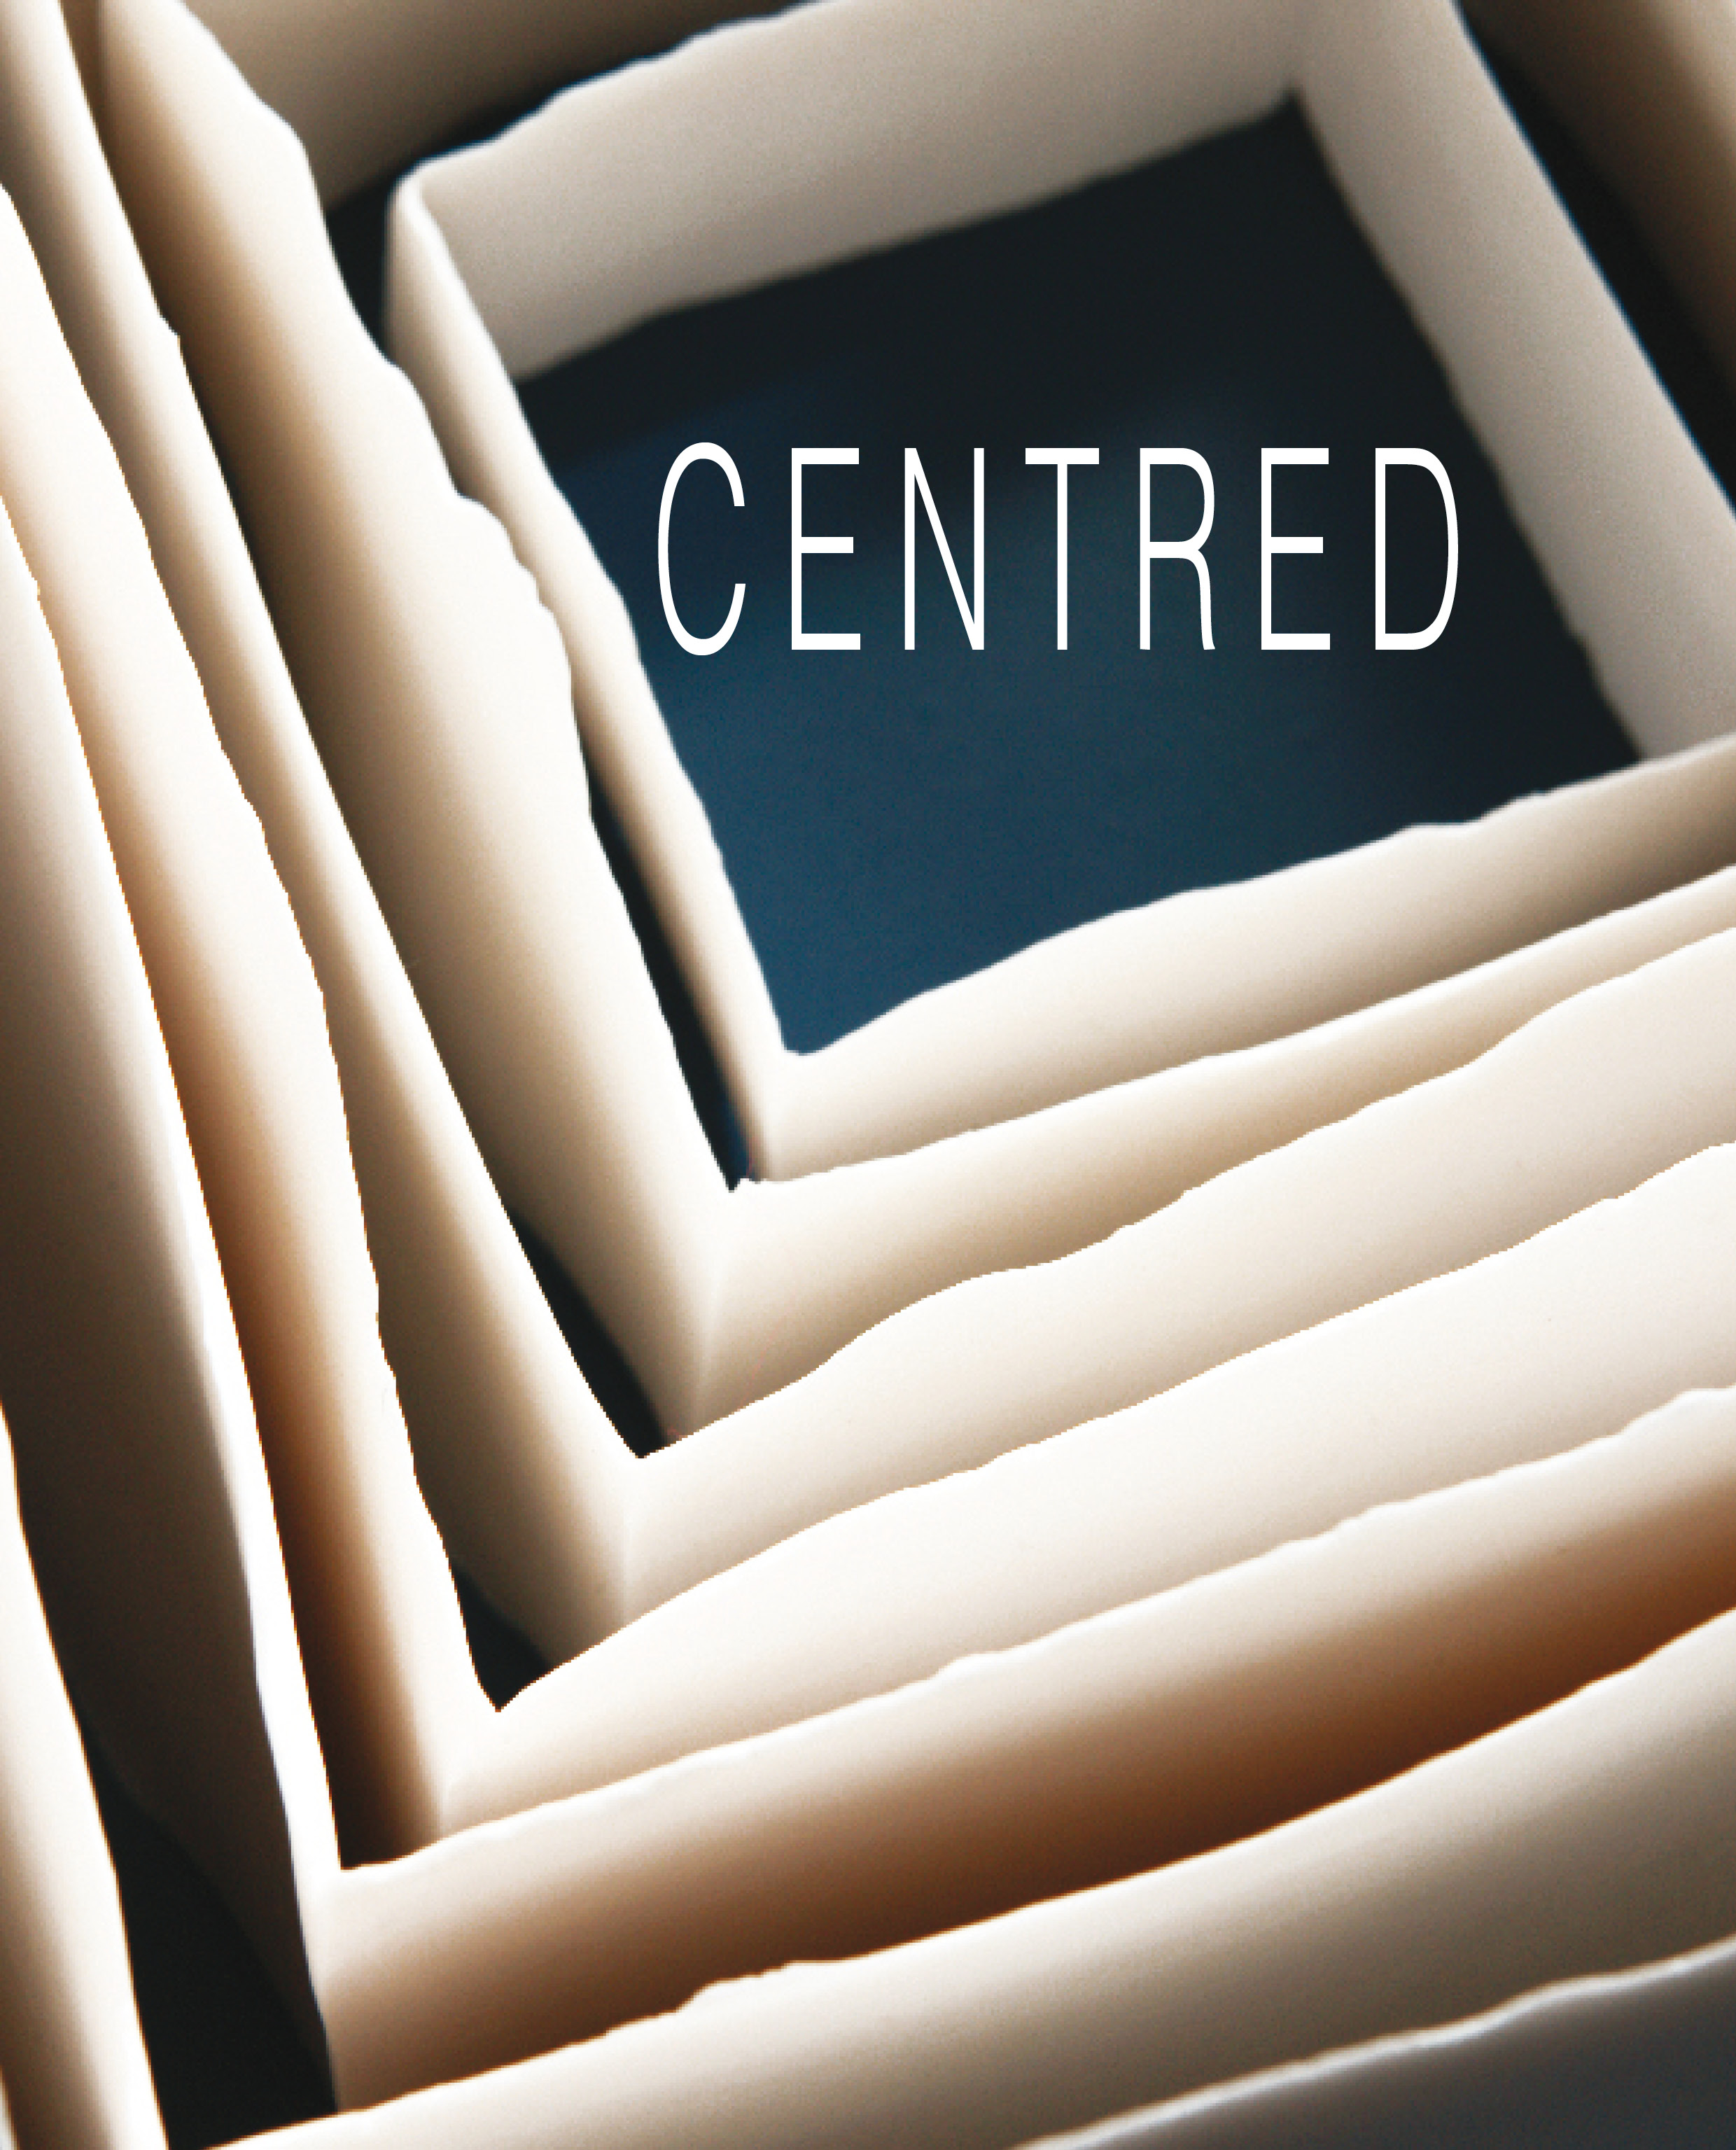 Centred 2014